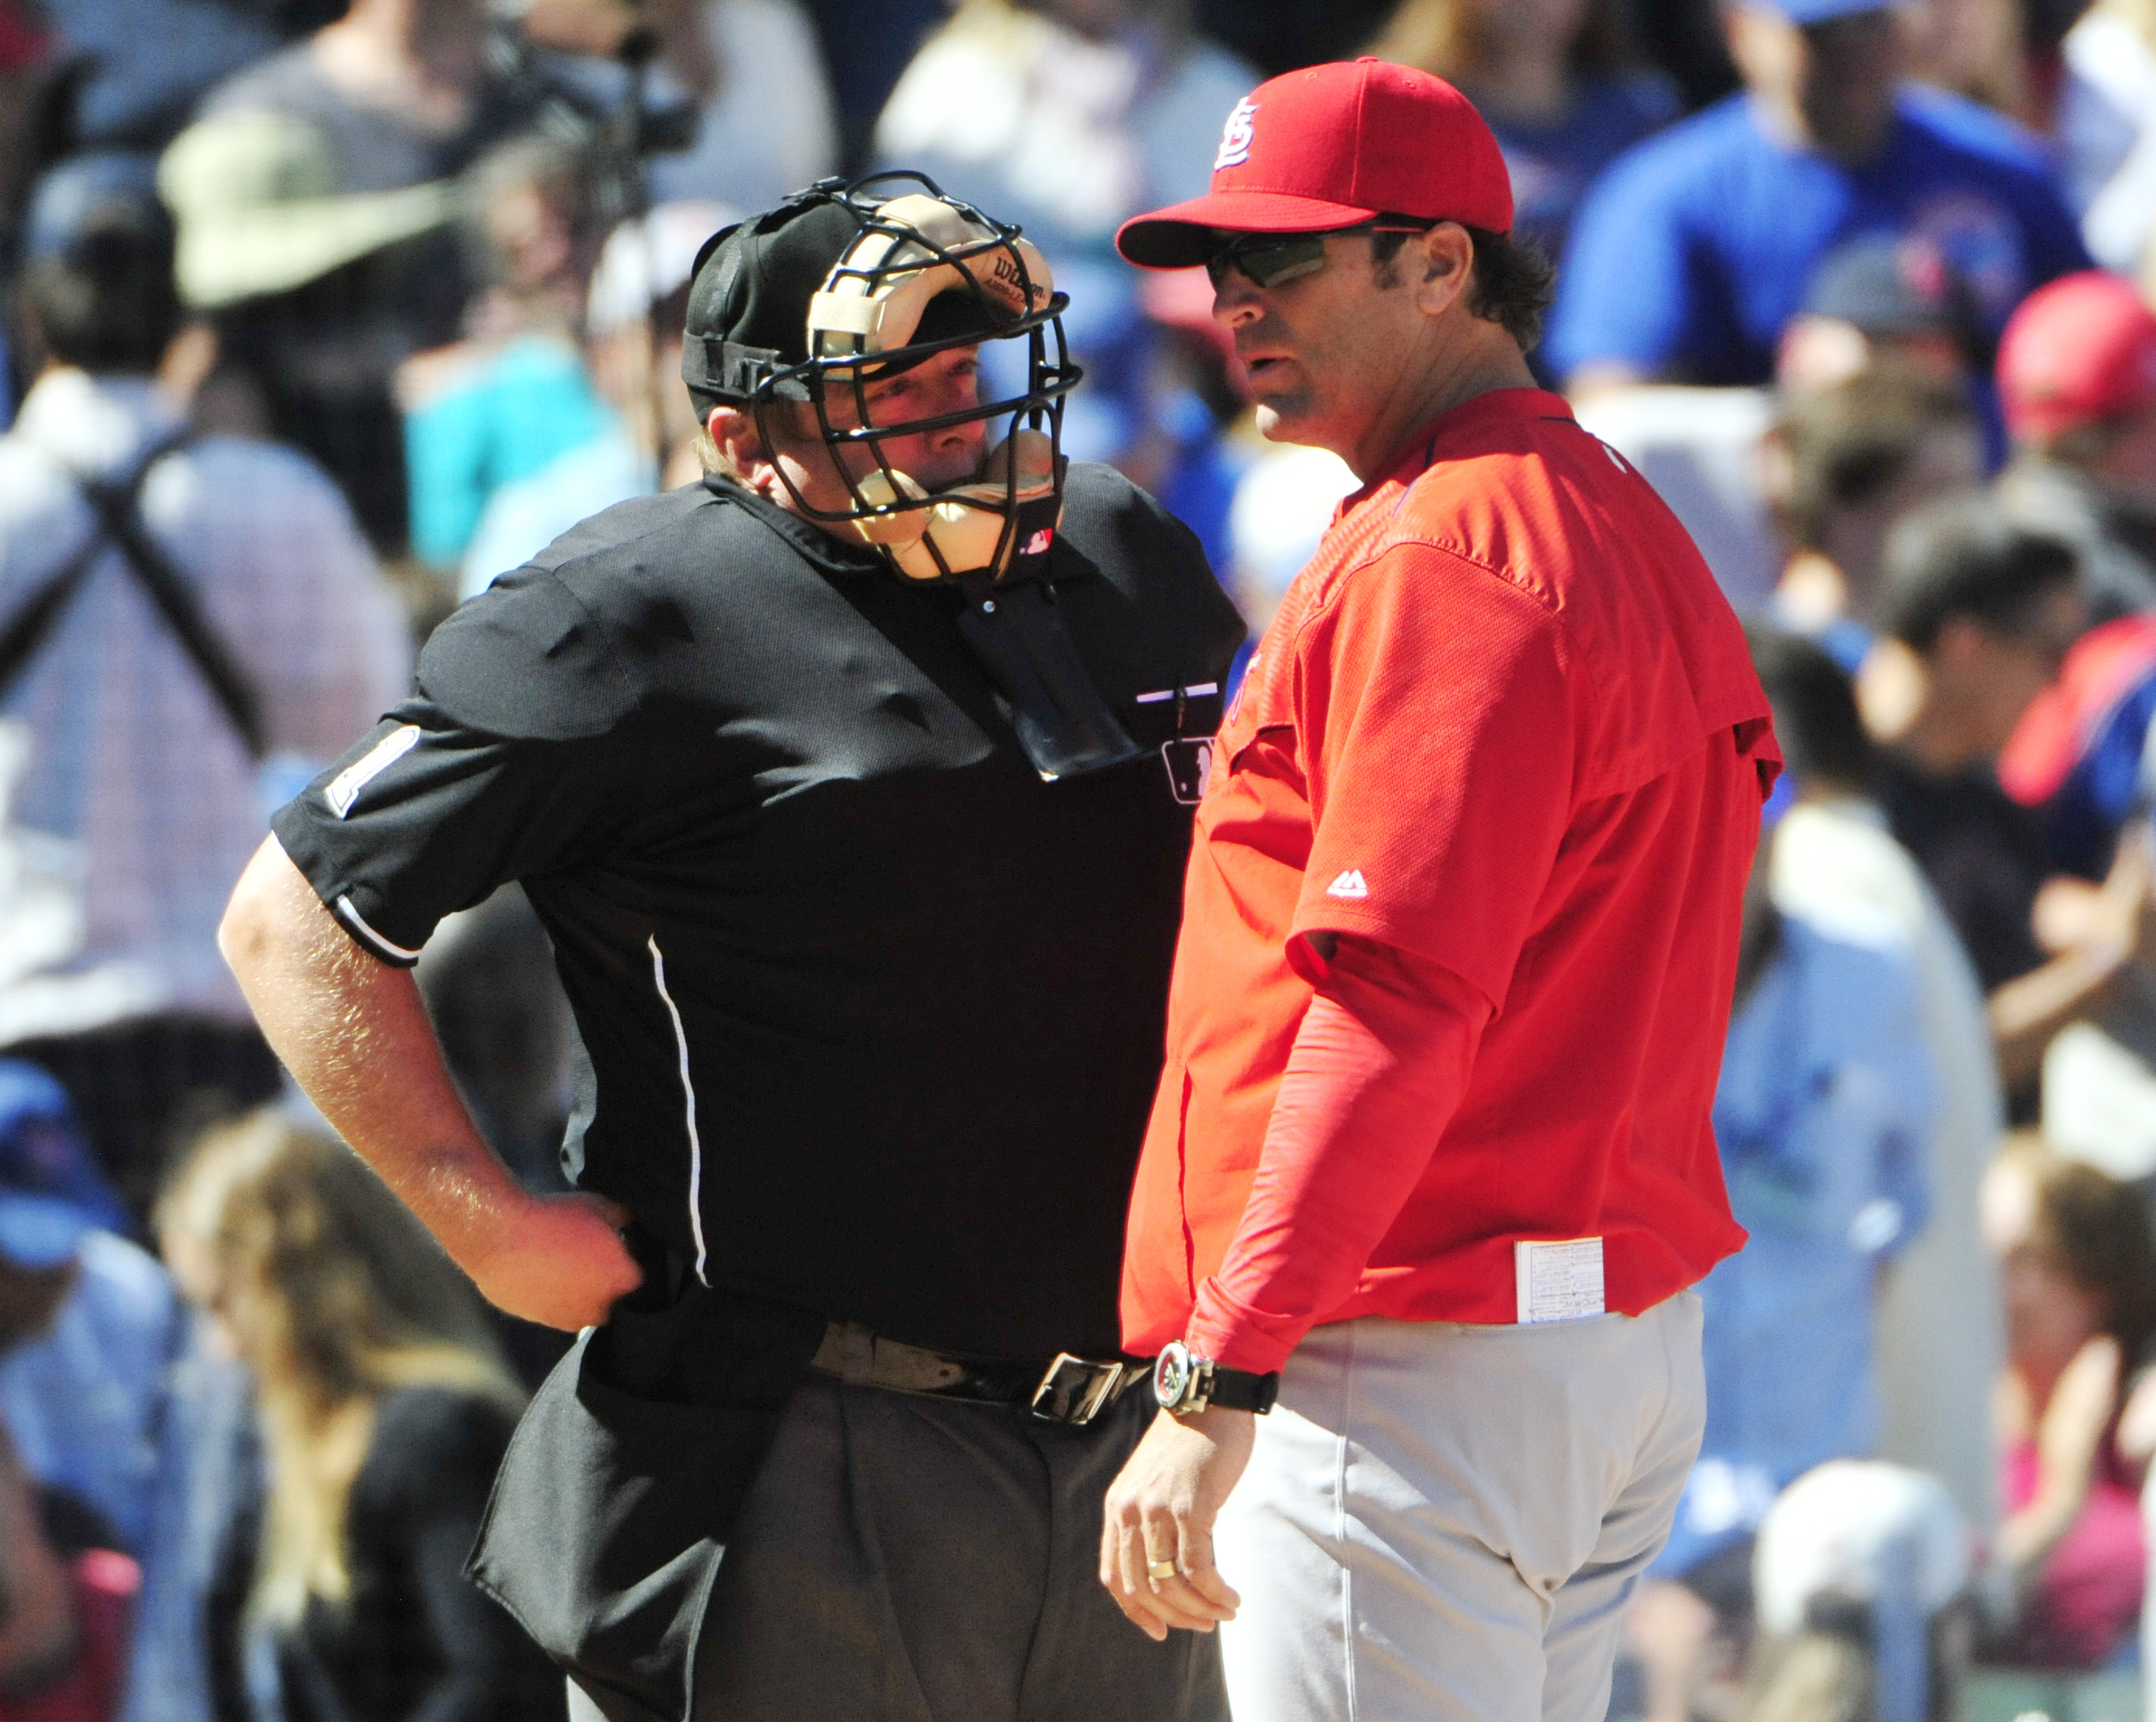 St. Louis Cardinals manager Mike Matheny, right, questions a call with home plate umpire Bruce Dreckman during the fifth inning of a baseball game against the Chicago Cubs, Saturday, Sept. 19, 2015, in Chicago. (AP Photo/David Banks)